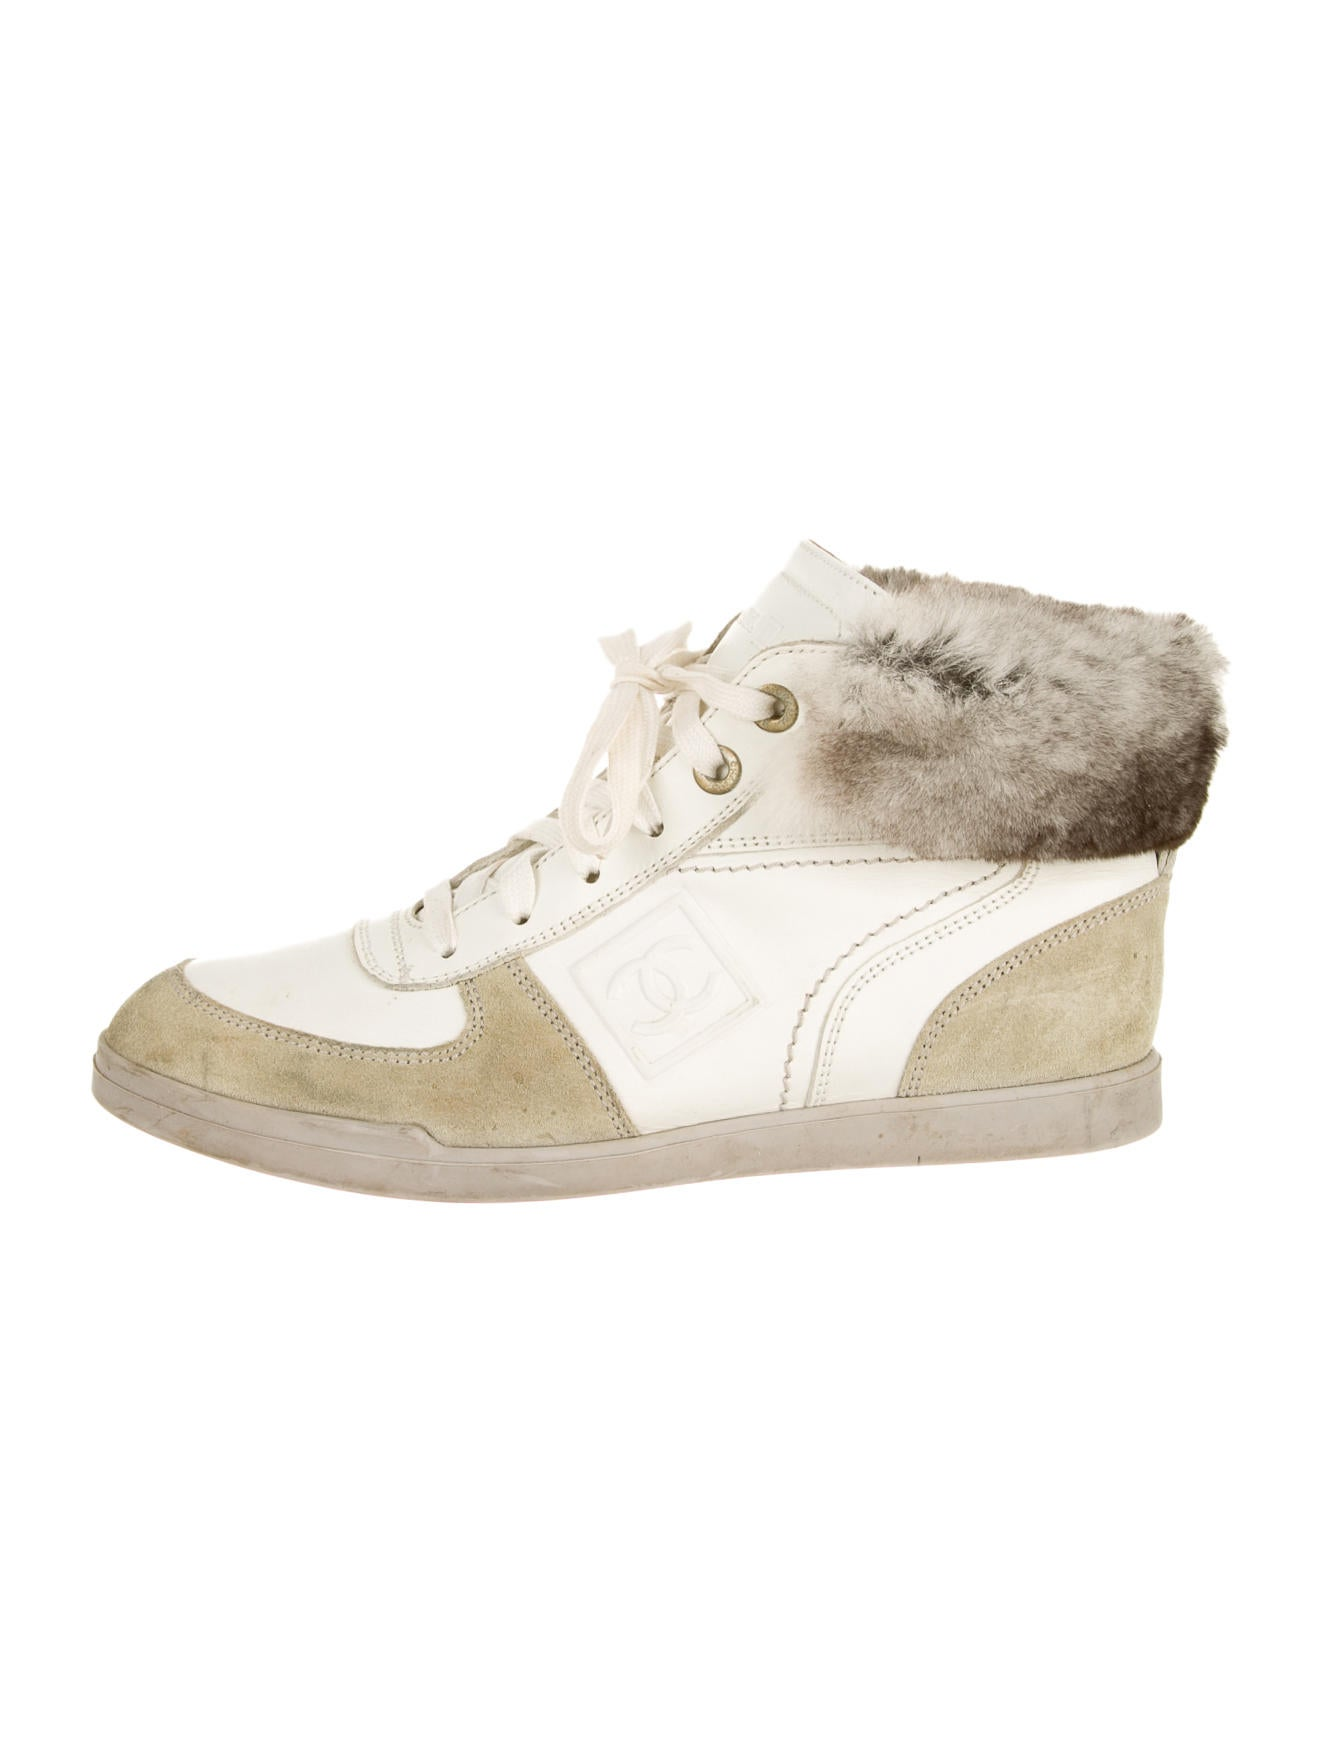 f98ba4f7ef6d Chanel Chinchilla Sneakers - Shoes - CHA50499 | The RealReal